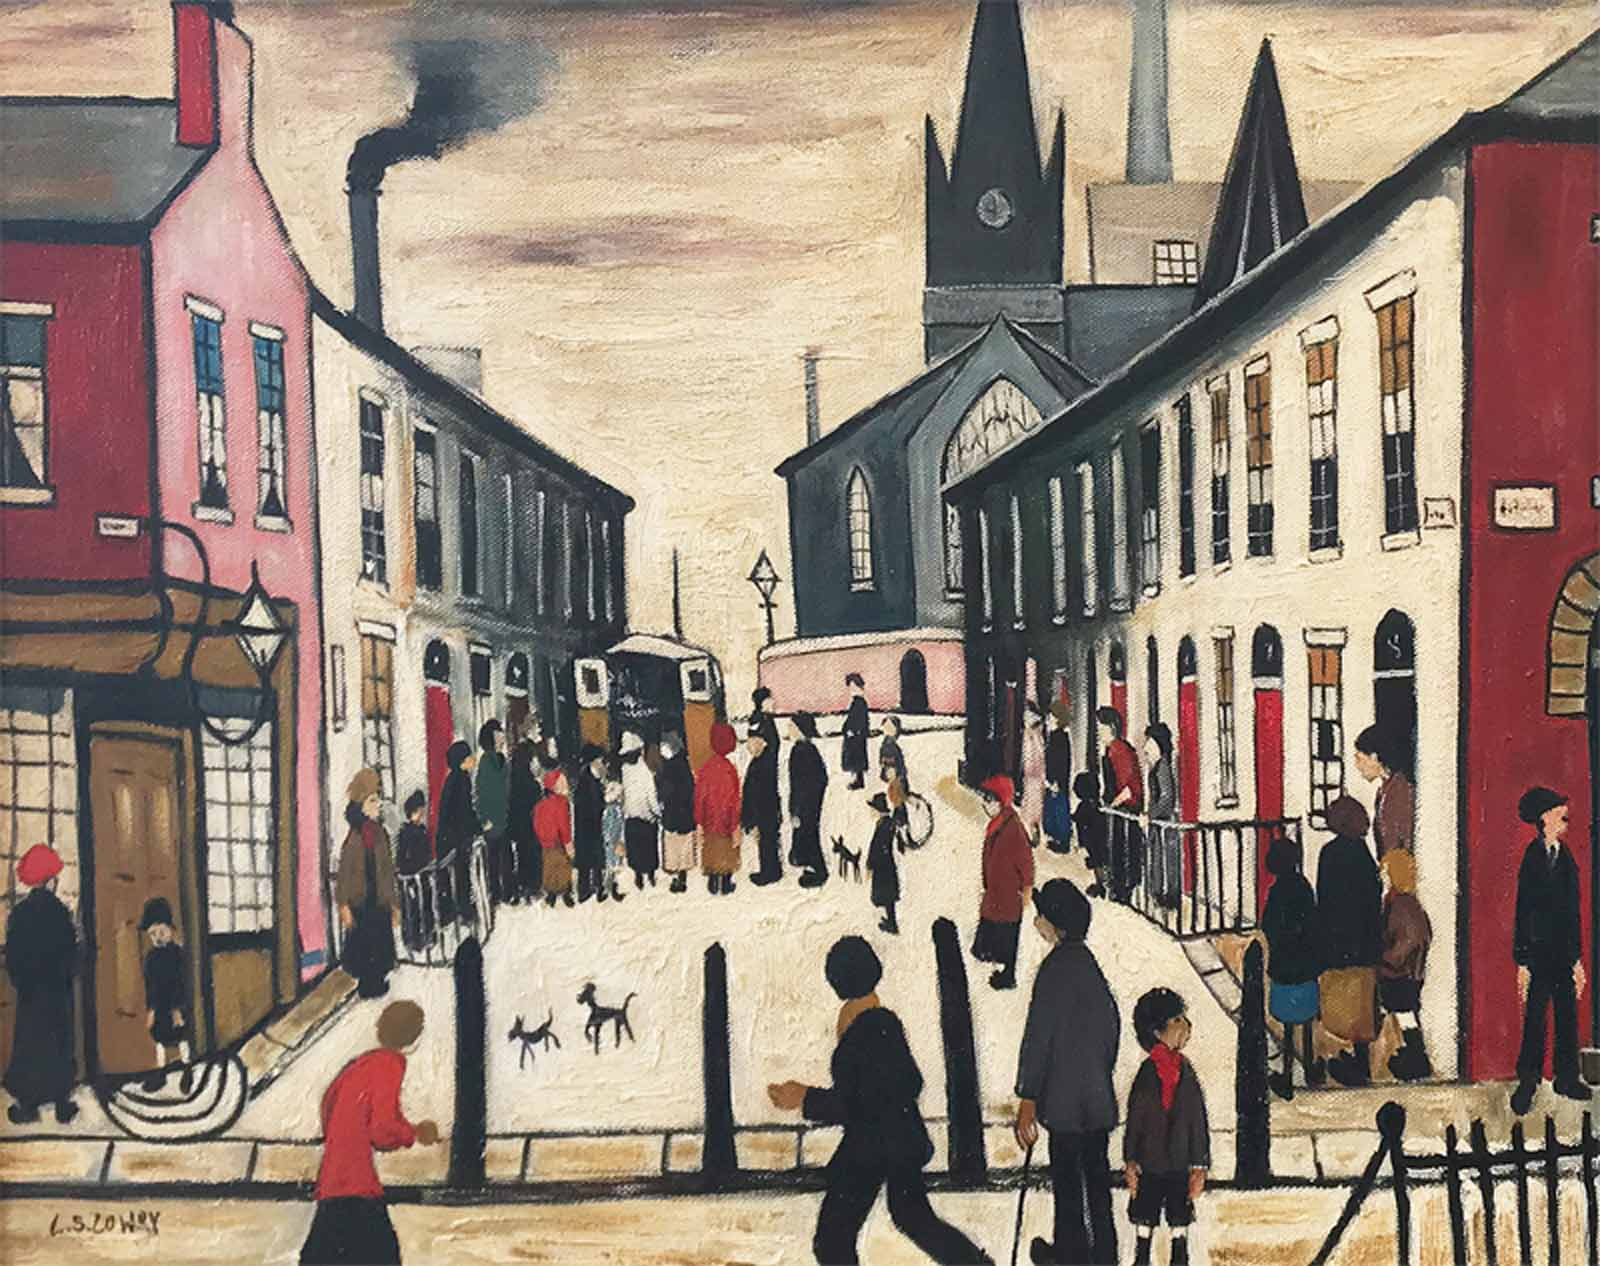 The Fever Van after L.S.Lowry